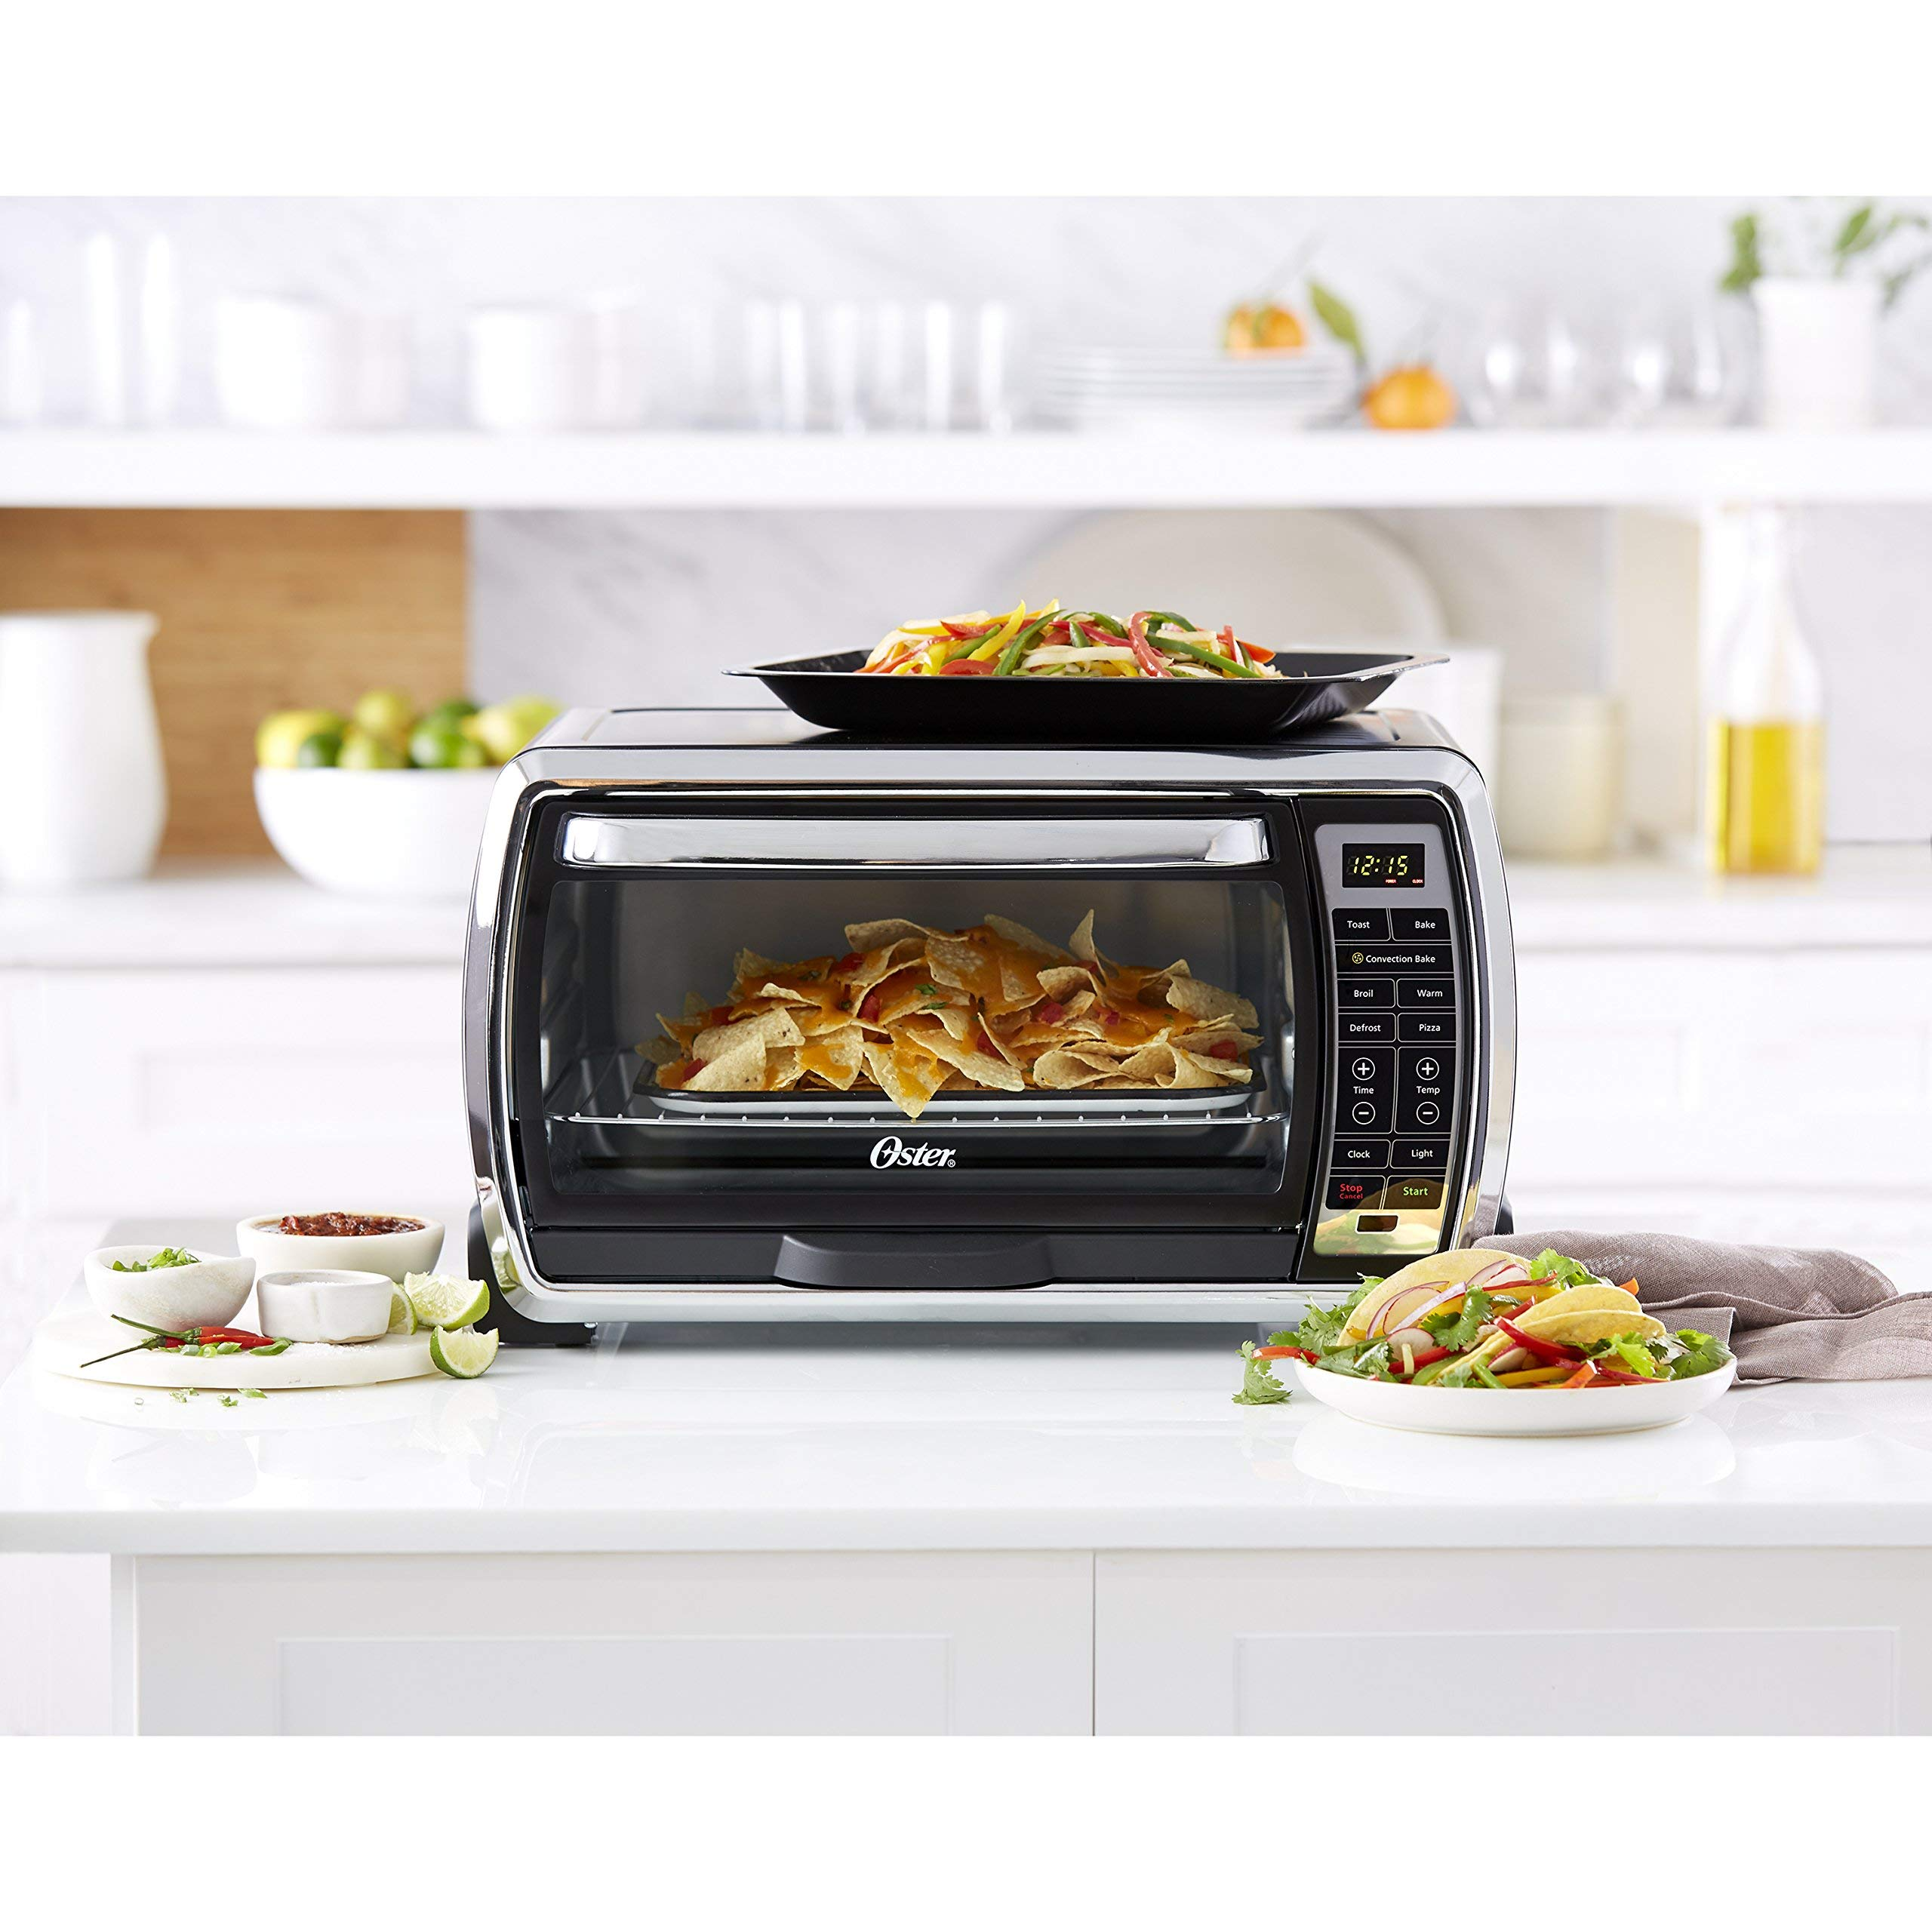 Oster Large Digital Countertop Convection Toaster Oven, 6 Slice, Black/Polished Stainless (TSSTTVMNDG-SHP-2) (Renewed) by Supportiback (Image #5)